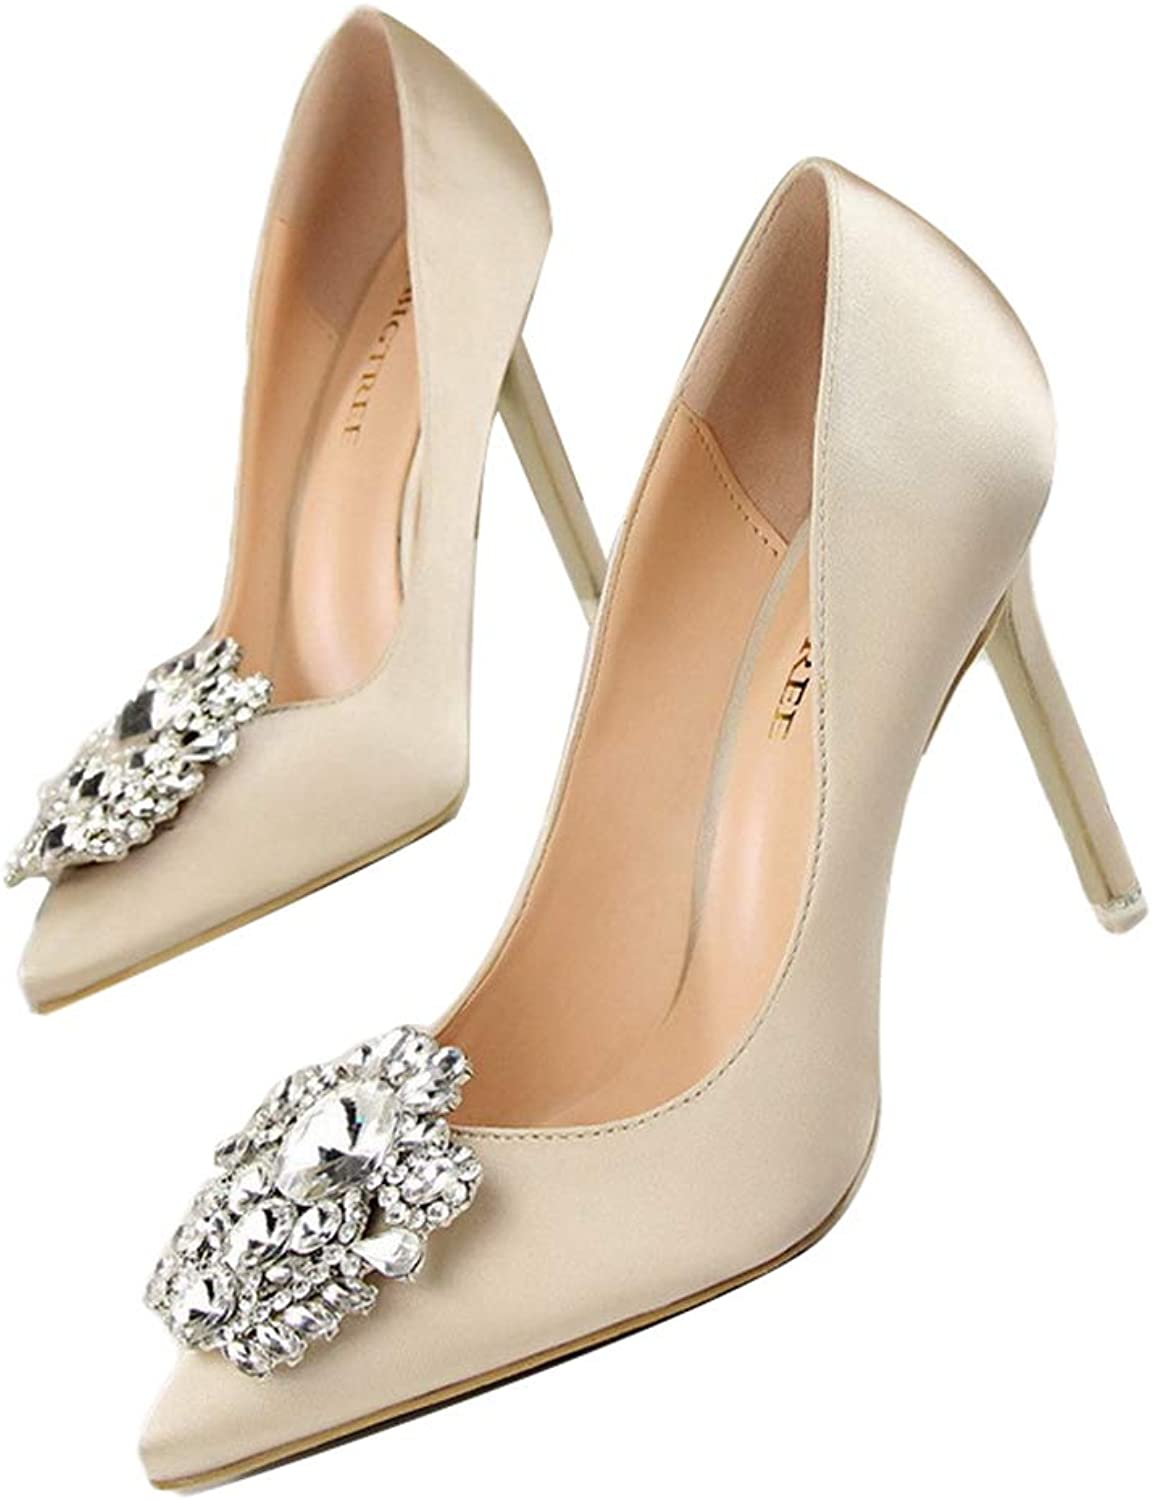 Kyle Walsh Pa Women Pumps Spring Autumn Elegant Rhinestone Silk Satin High Heels shoes Sexy Thin Pointed Single shoes